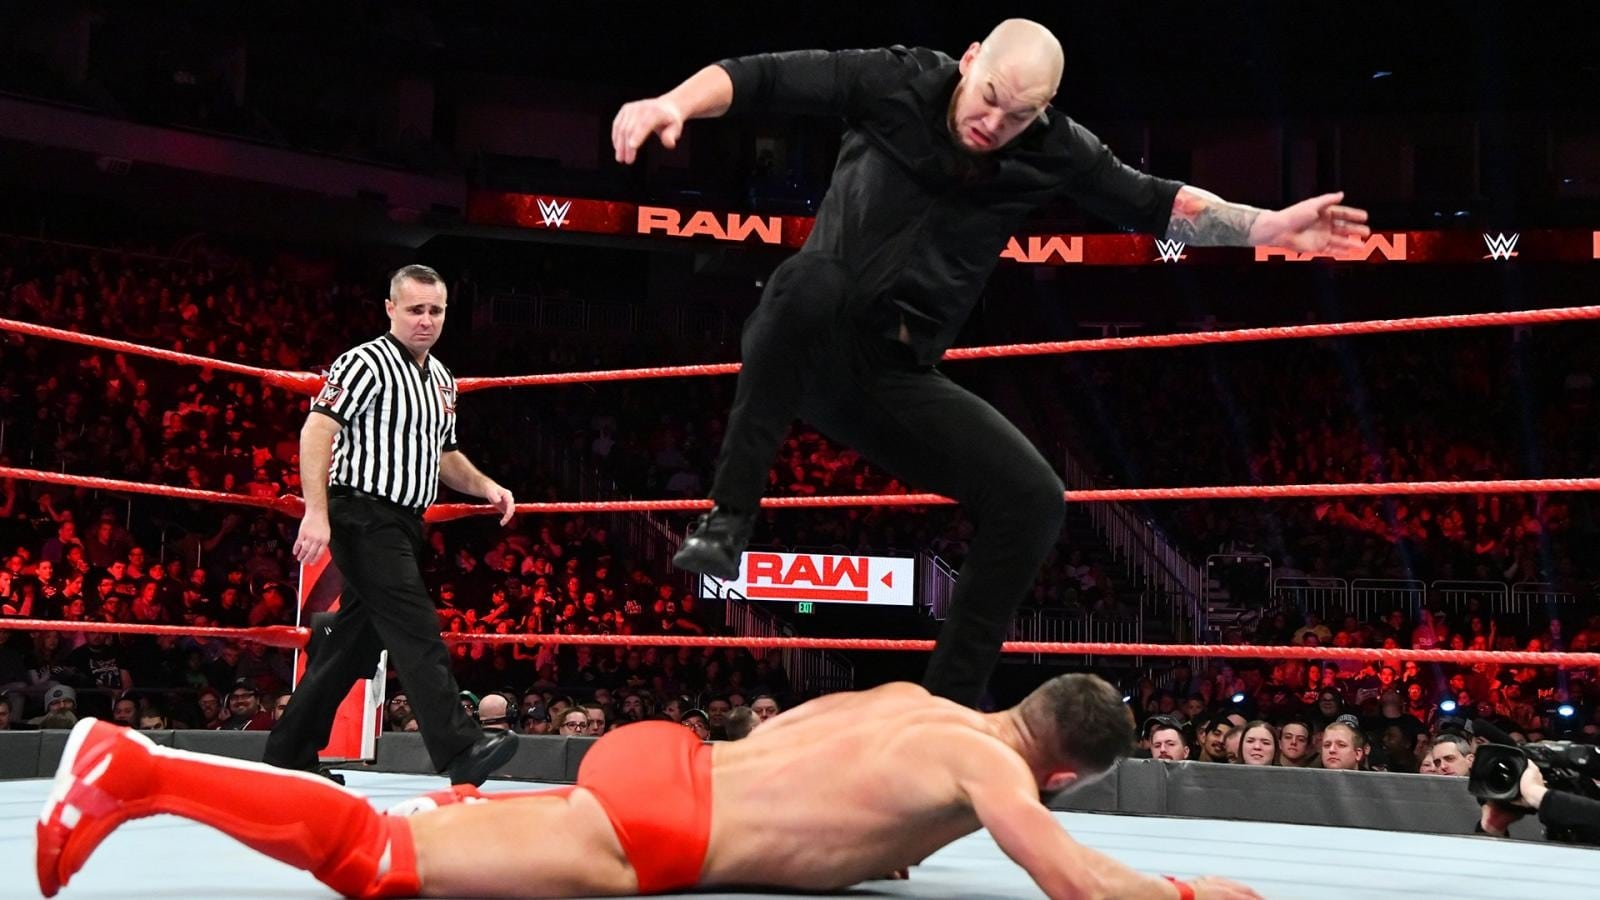 WWE Raw Season 26 :Episode 48  November 26, 2018 (Milwaukee, WI)